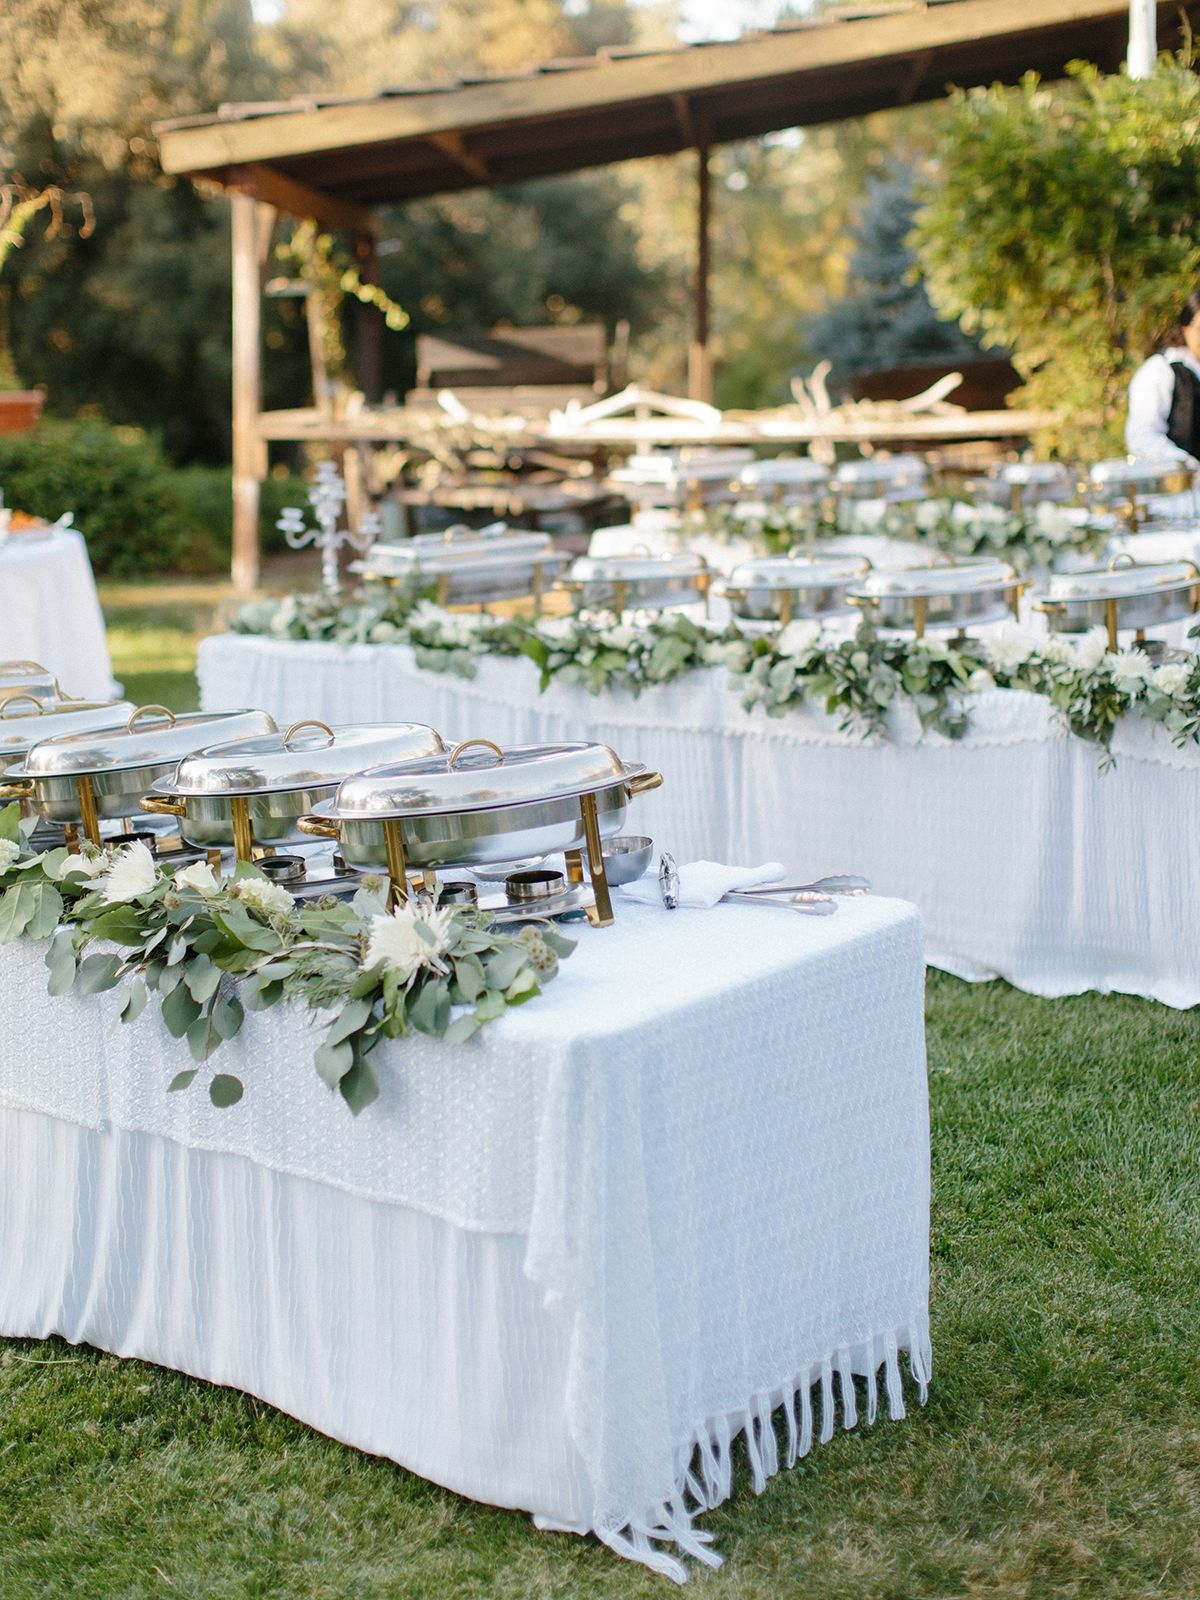 How to have a private estate wedding for 300 without over spending make your wedding buffet feel less like a cafeteria with a little extra floral garlands draped on the tables watchthetrailerfo